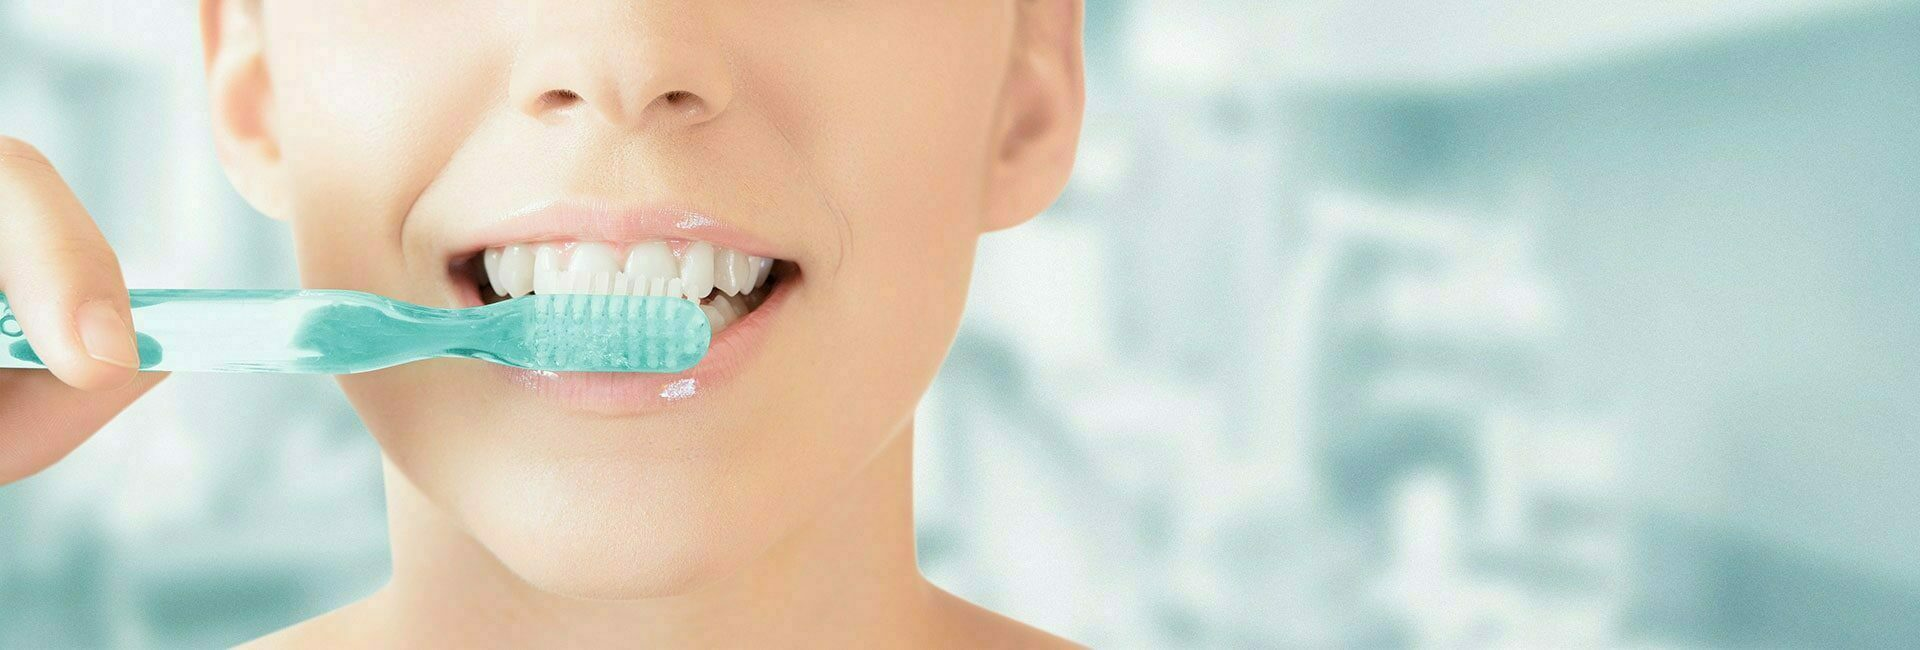 Brush your teeth properly | DR. HAGER